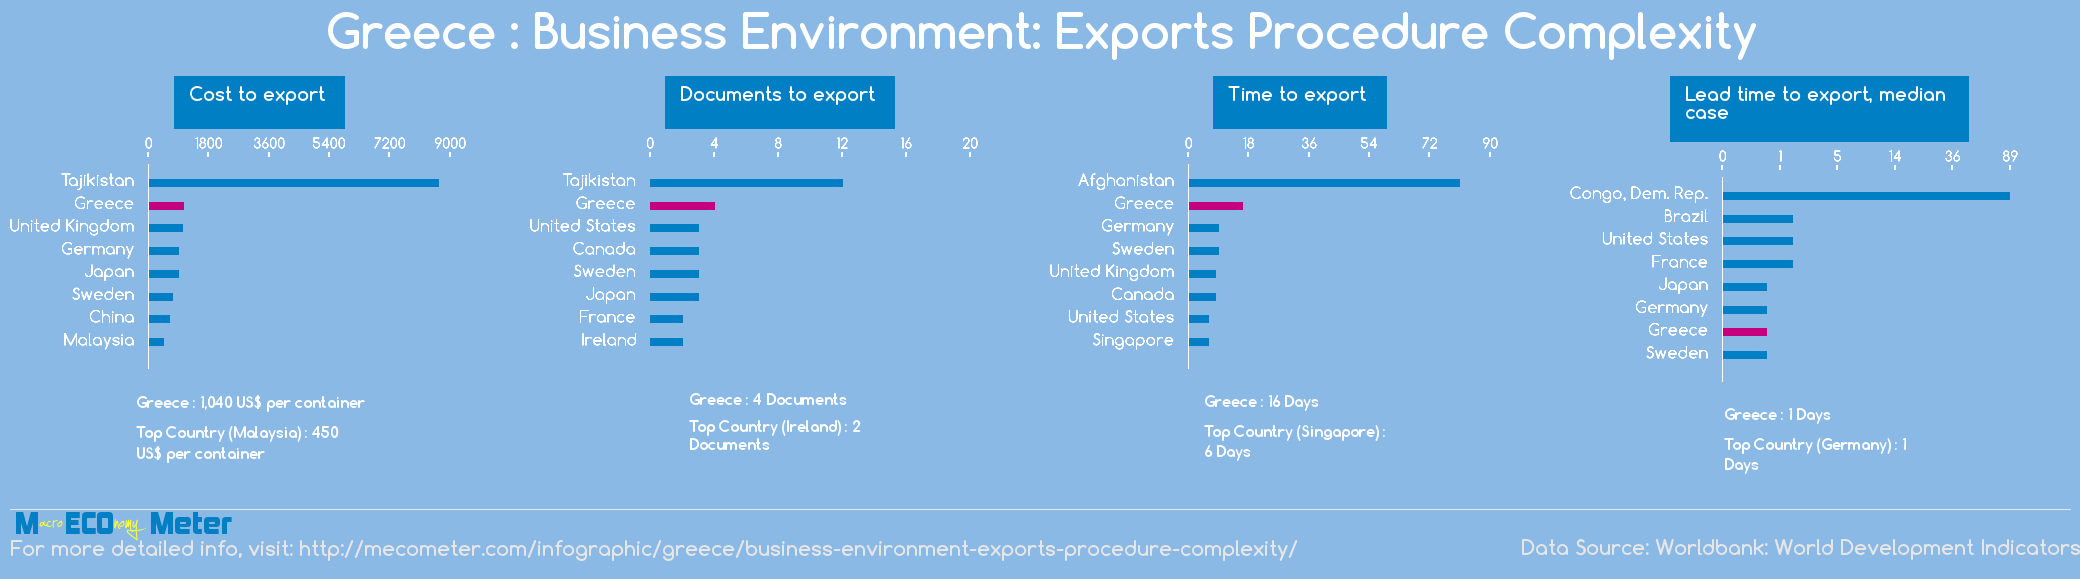 Greece : Business Environment: Exports Procedure Complexity